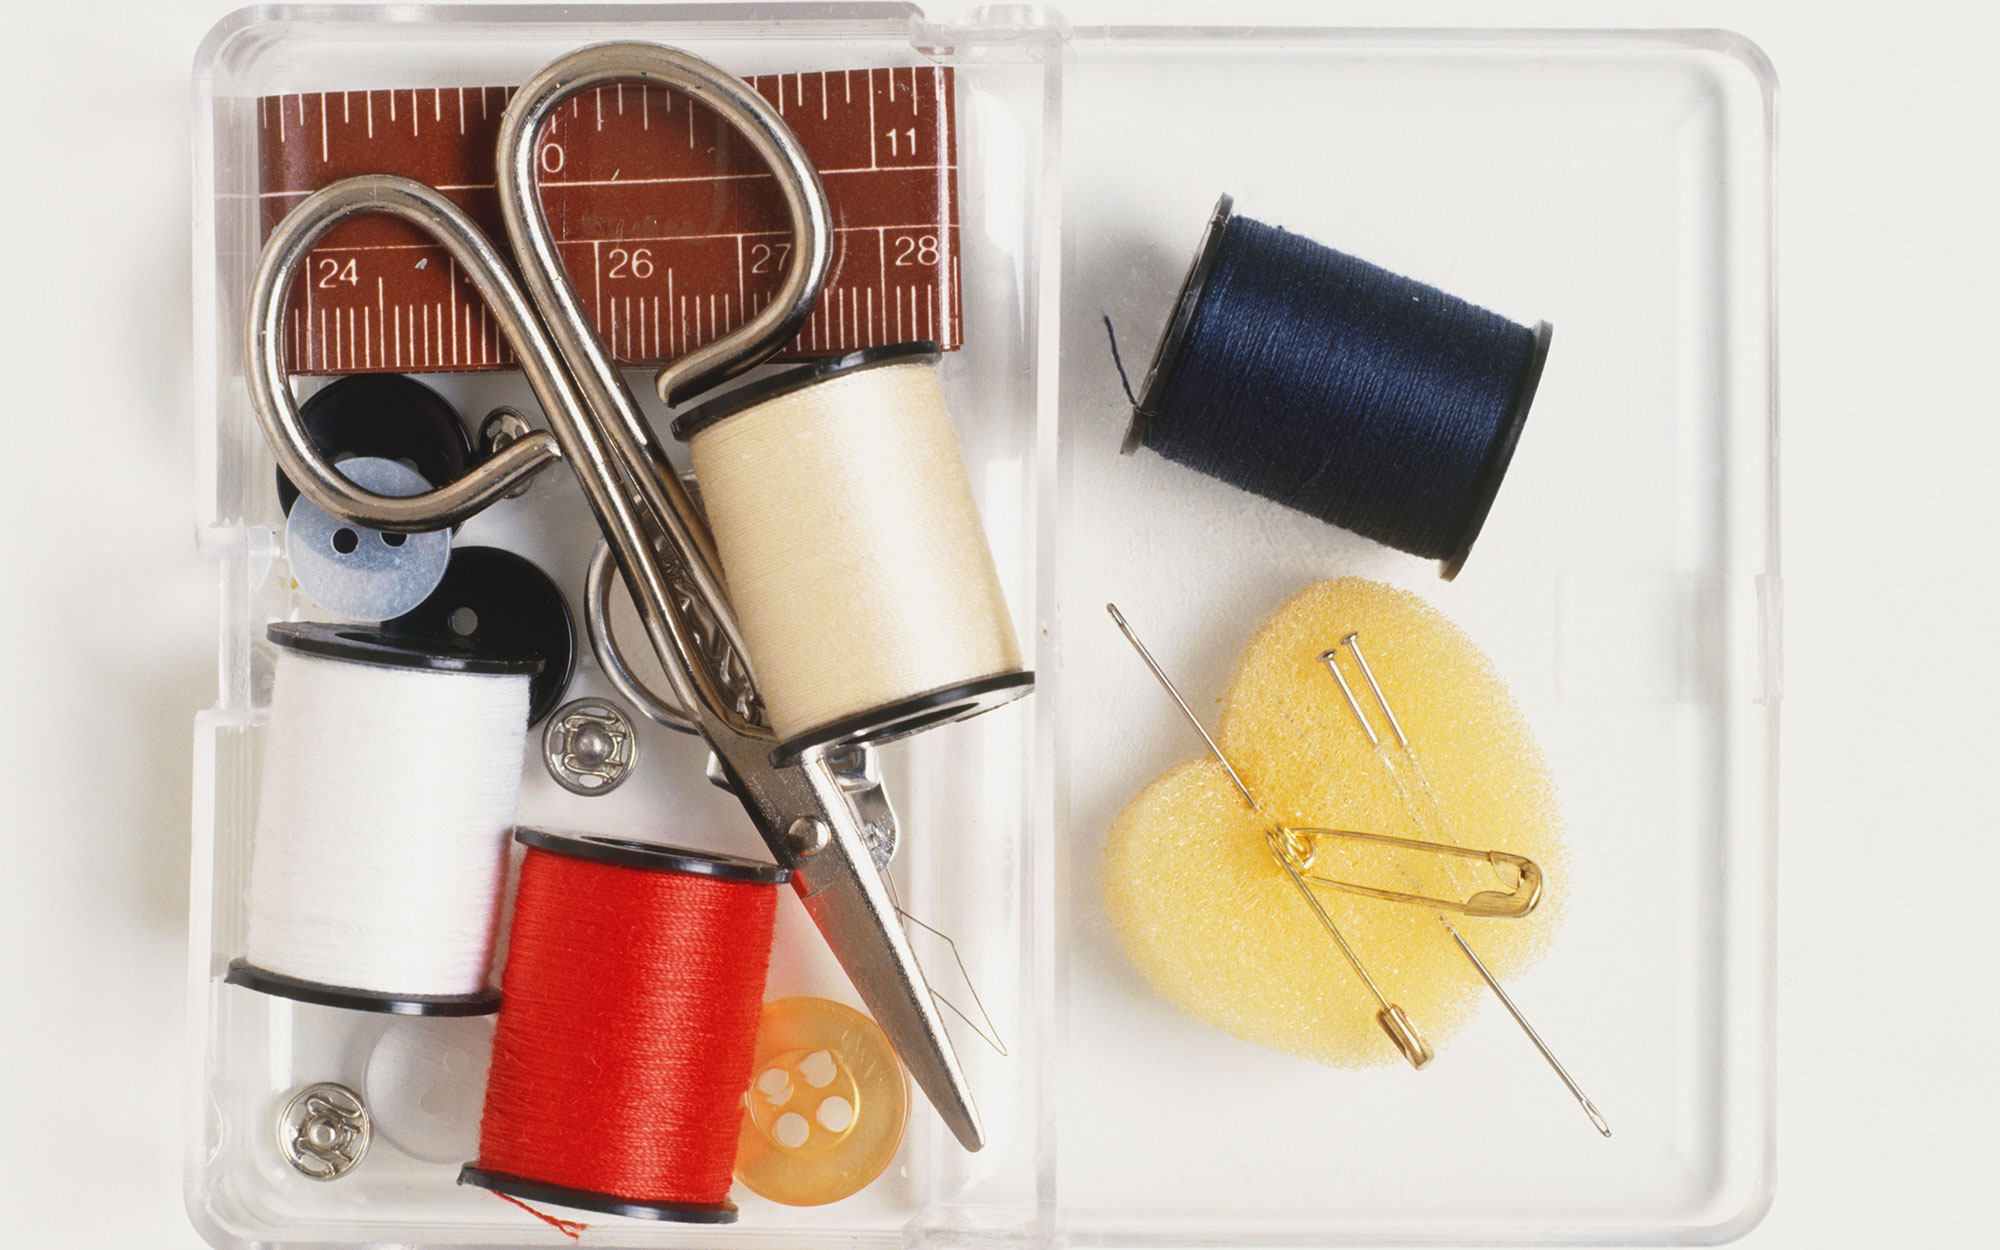 20 Secret Hotel Amenities Even the Concierge Doesn't Know About: Personalized Sewing Kit